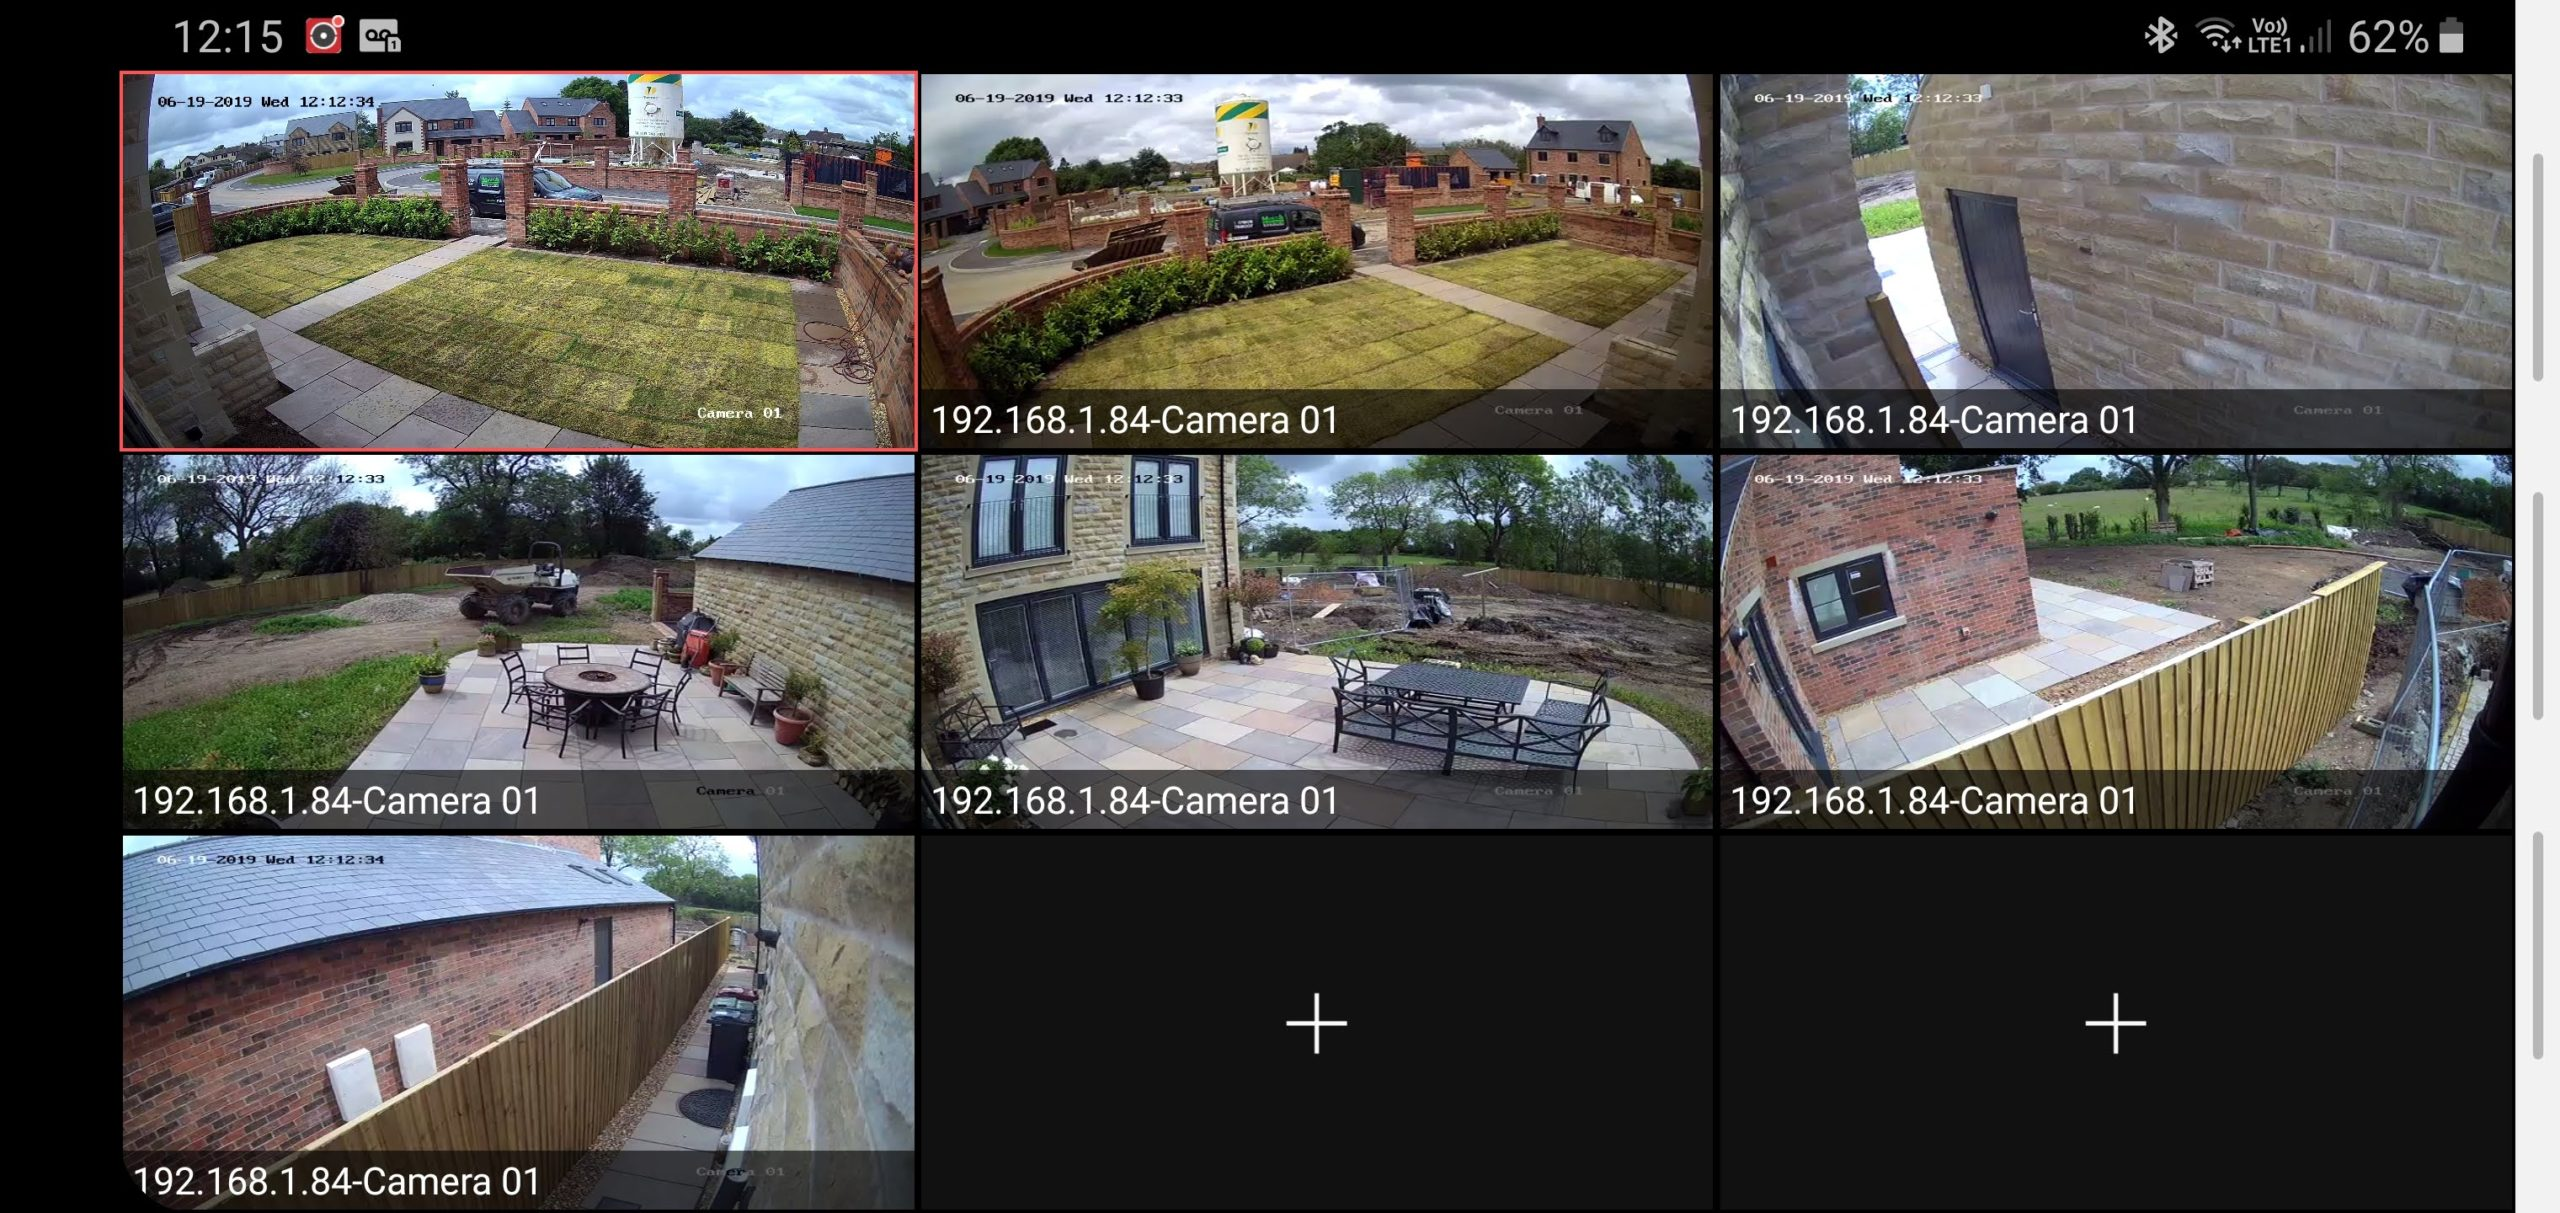 Do discount CCTV cameras really do the job? 1